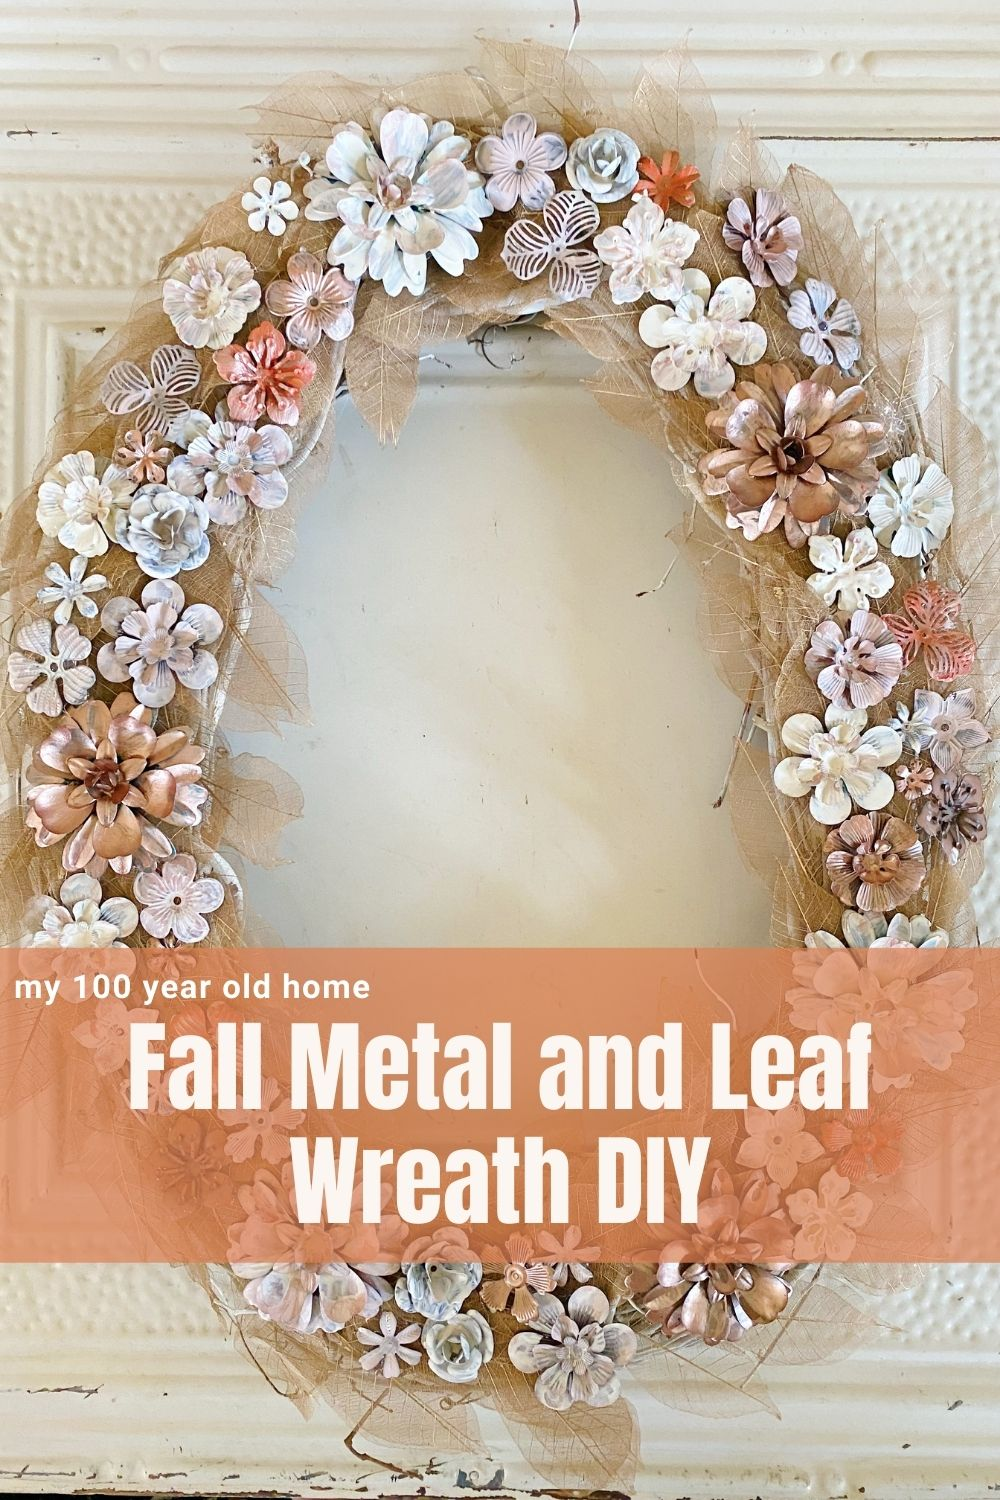 I am in love with an Anthropologie fall metal and leaf wreath but I made a similar one instead. Mine cost one quarter of the price to make and I love it!